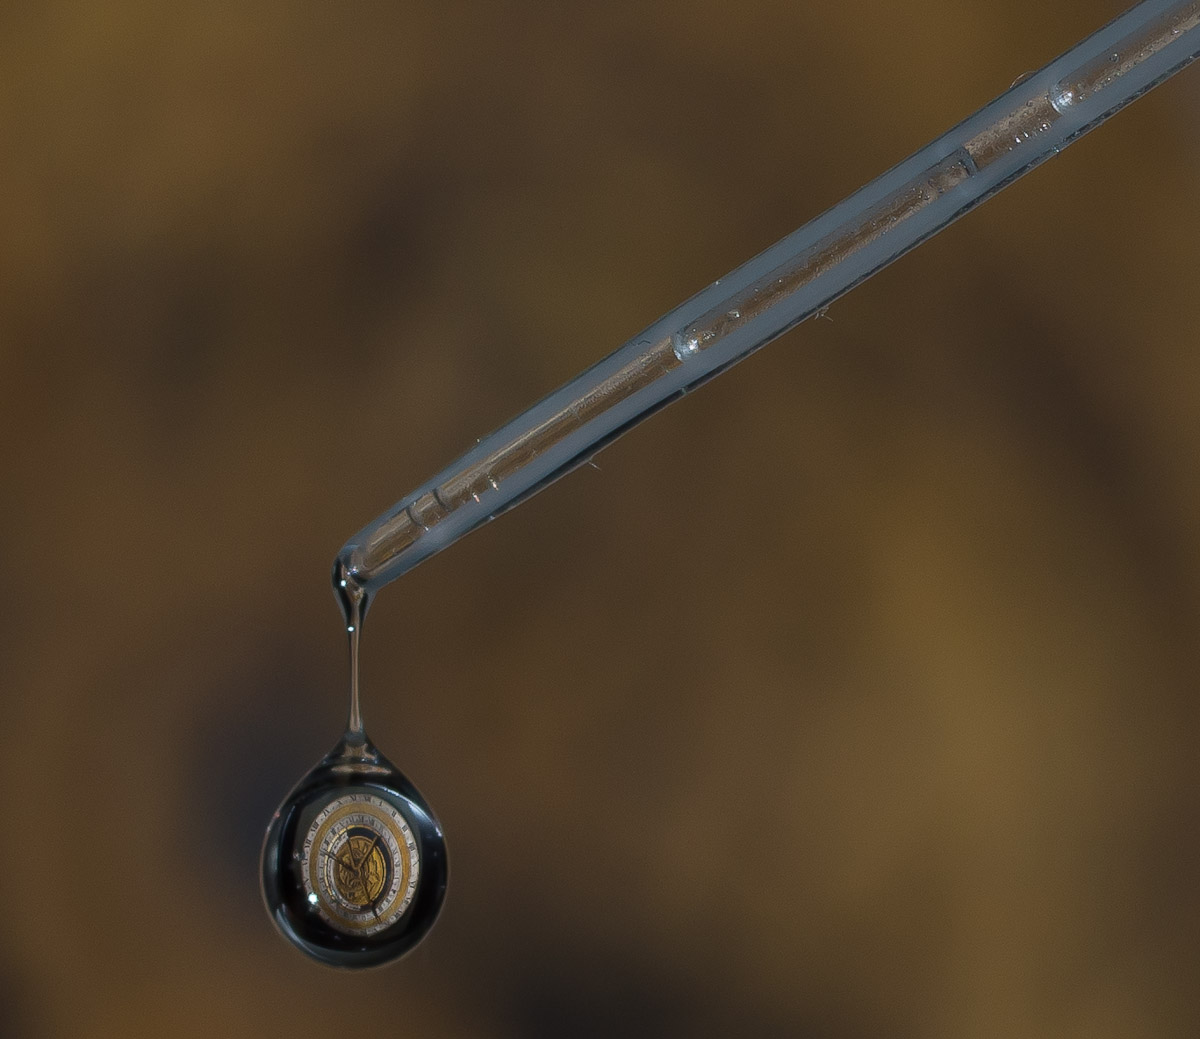 antique clock in a drop